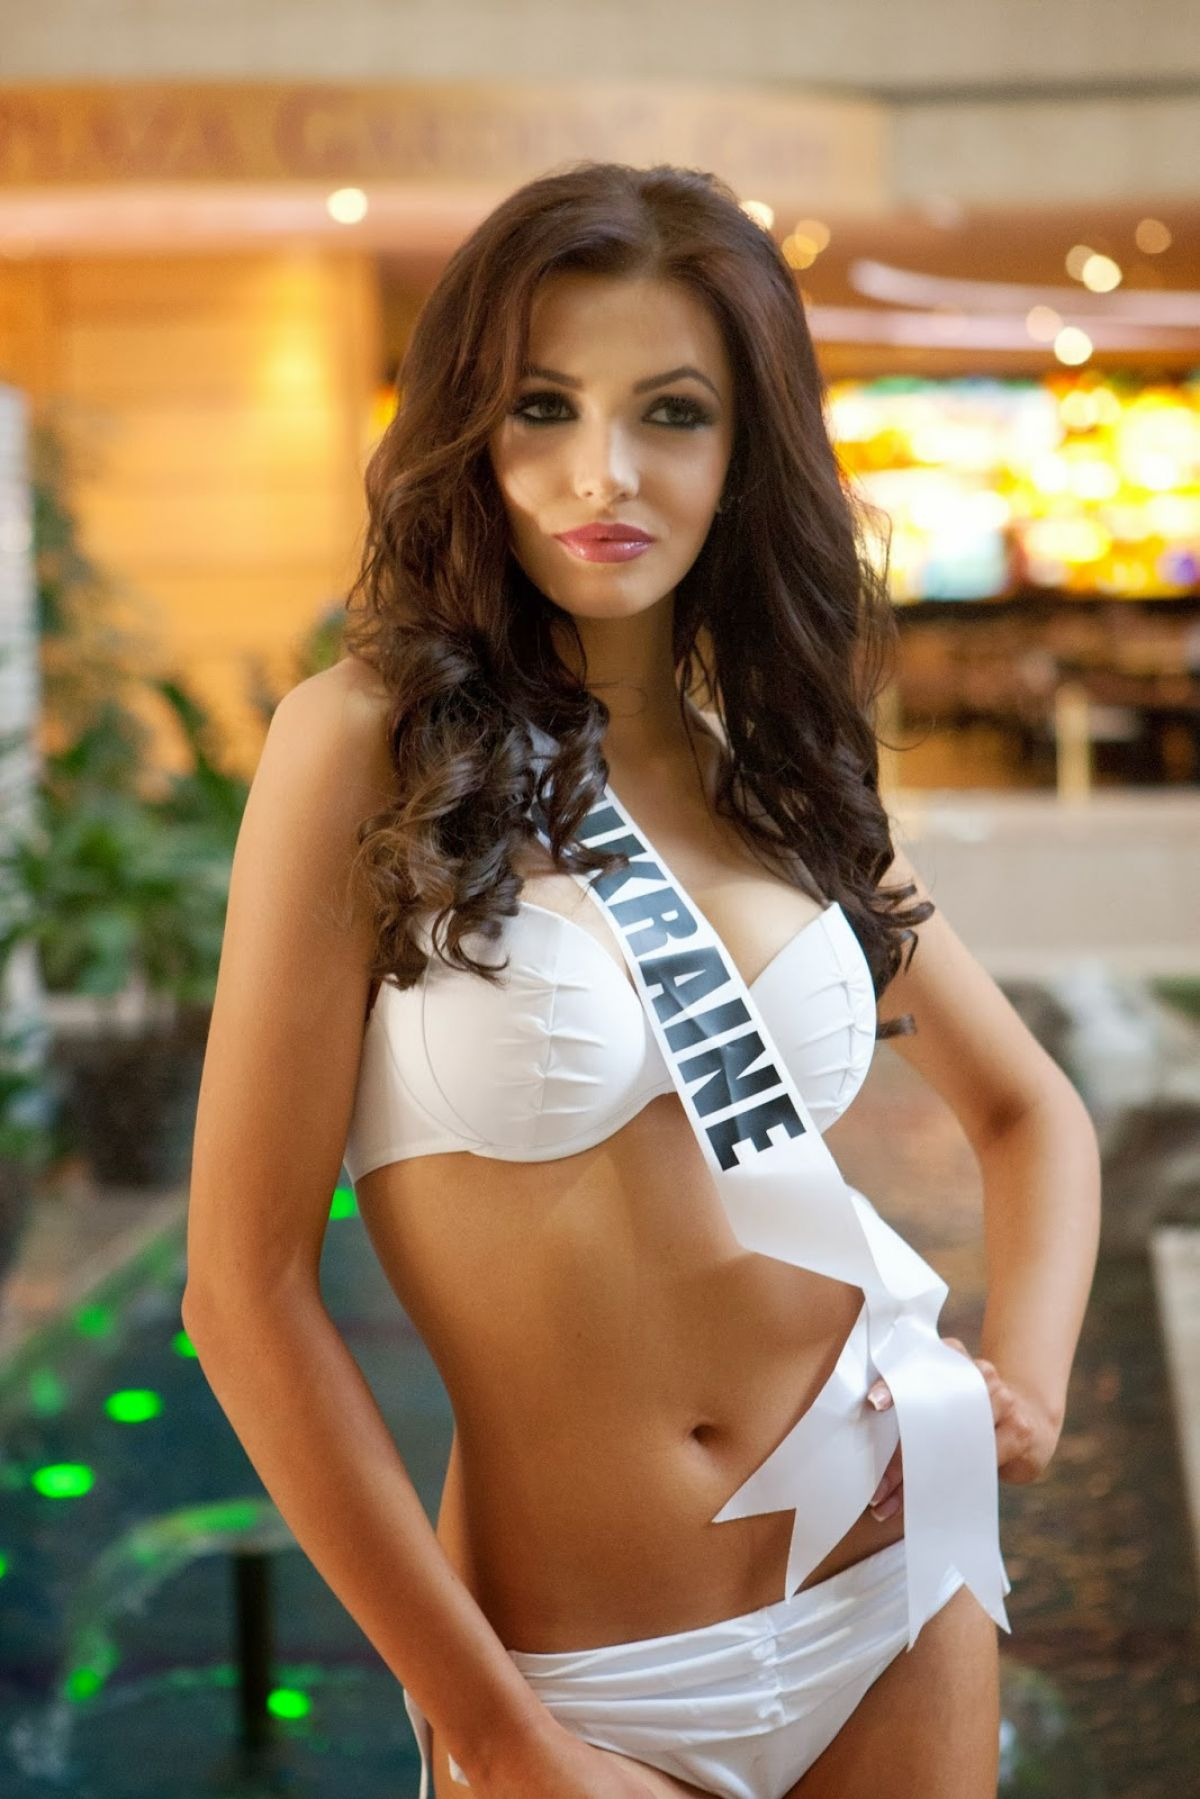 Miss Ukraine OLGA STOROZHENKO - 2014 Yamamay Swimwear for Miss Universe